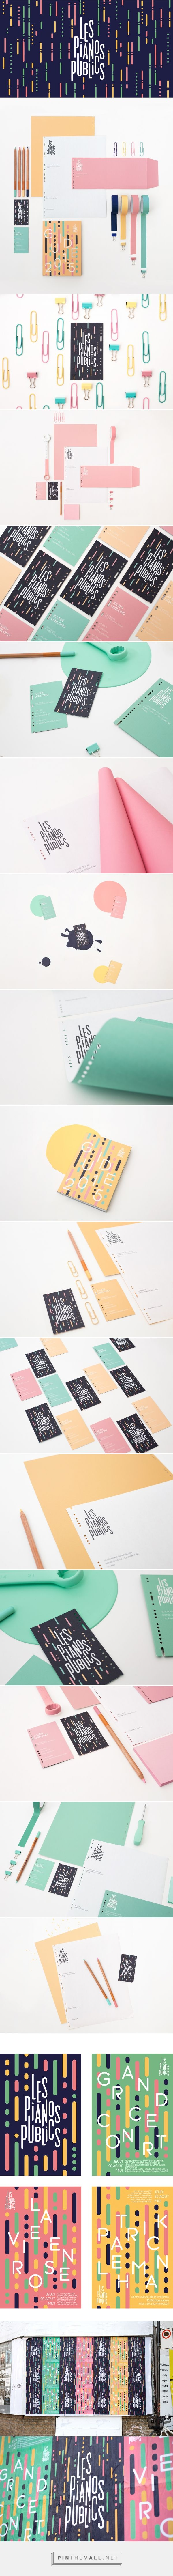 Les Pianos Publics Branding on Behance | Fivestar Branding – Design and…